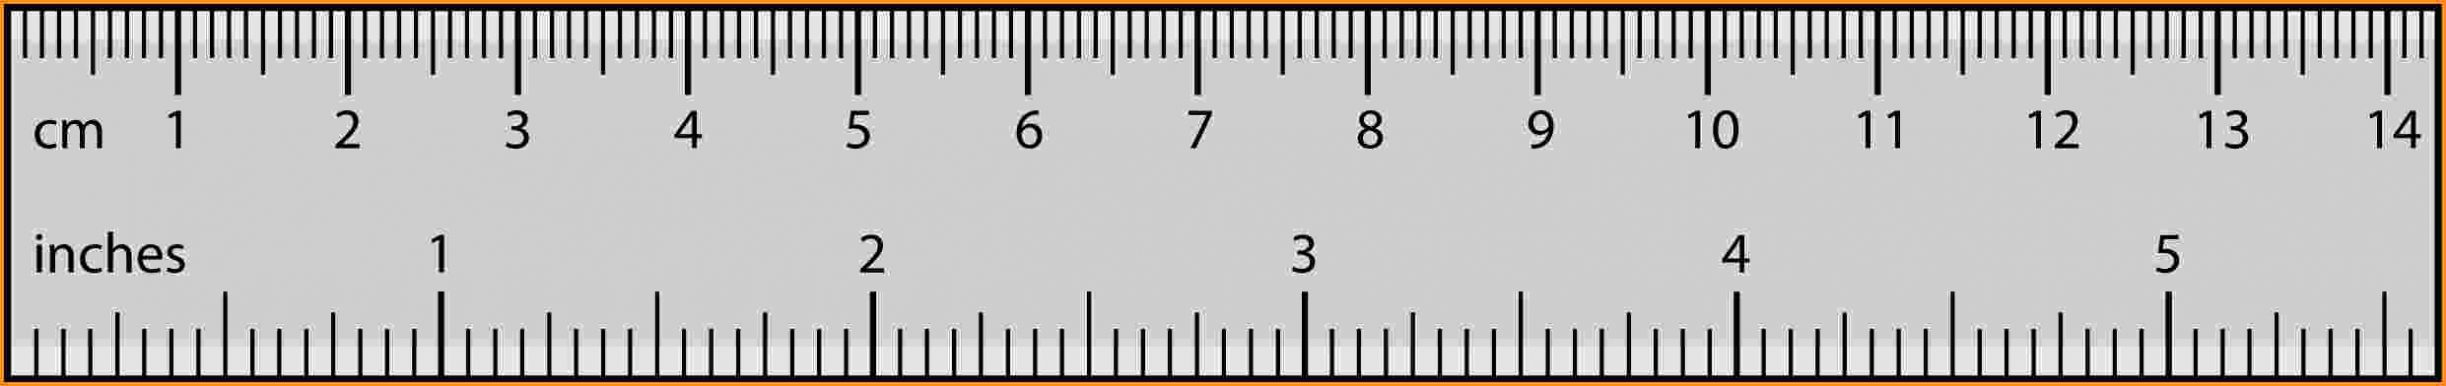 Real Size Ruler - Bakara.luckincsolutions